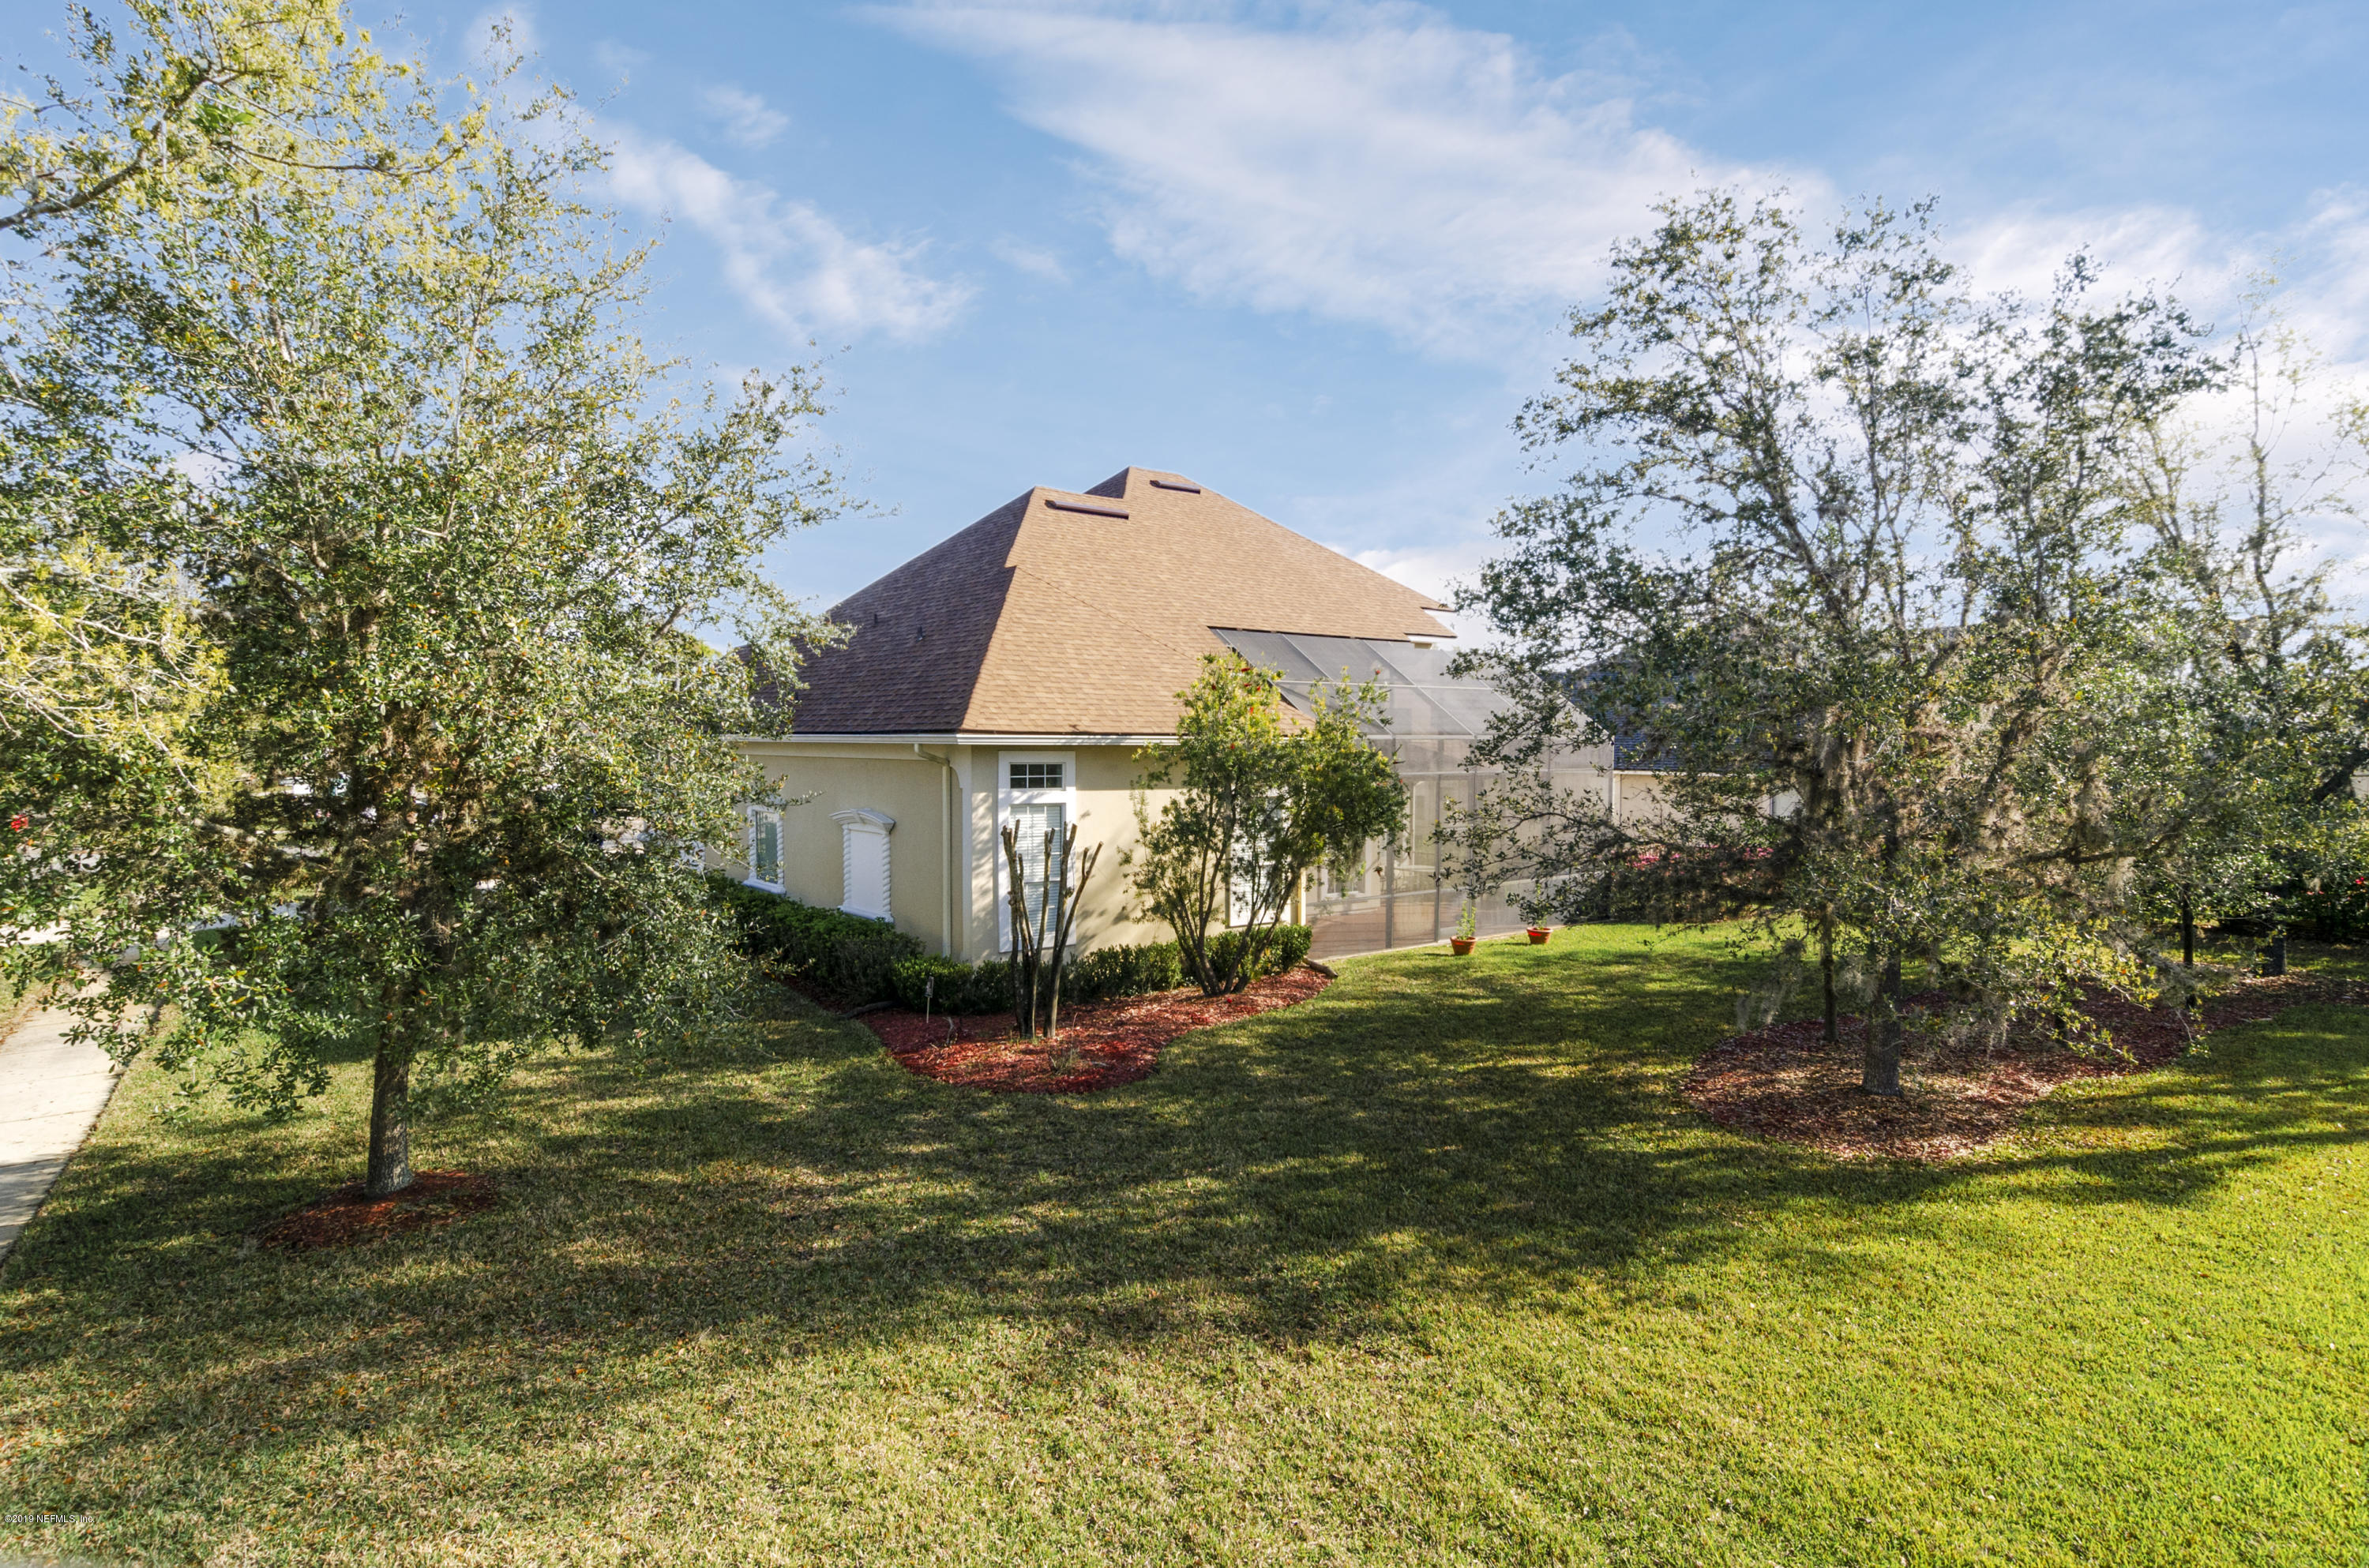 653 DONALD ROSS, ST AUGUSTINE, FLORIDA 32092, 4 Bedrooms Bedrooms, ,2 BathroomsBathrooms,Residential - single family,For sale,DONALD ROSS,980009